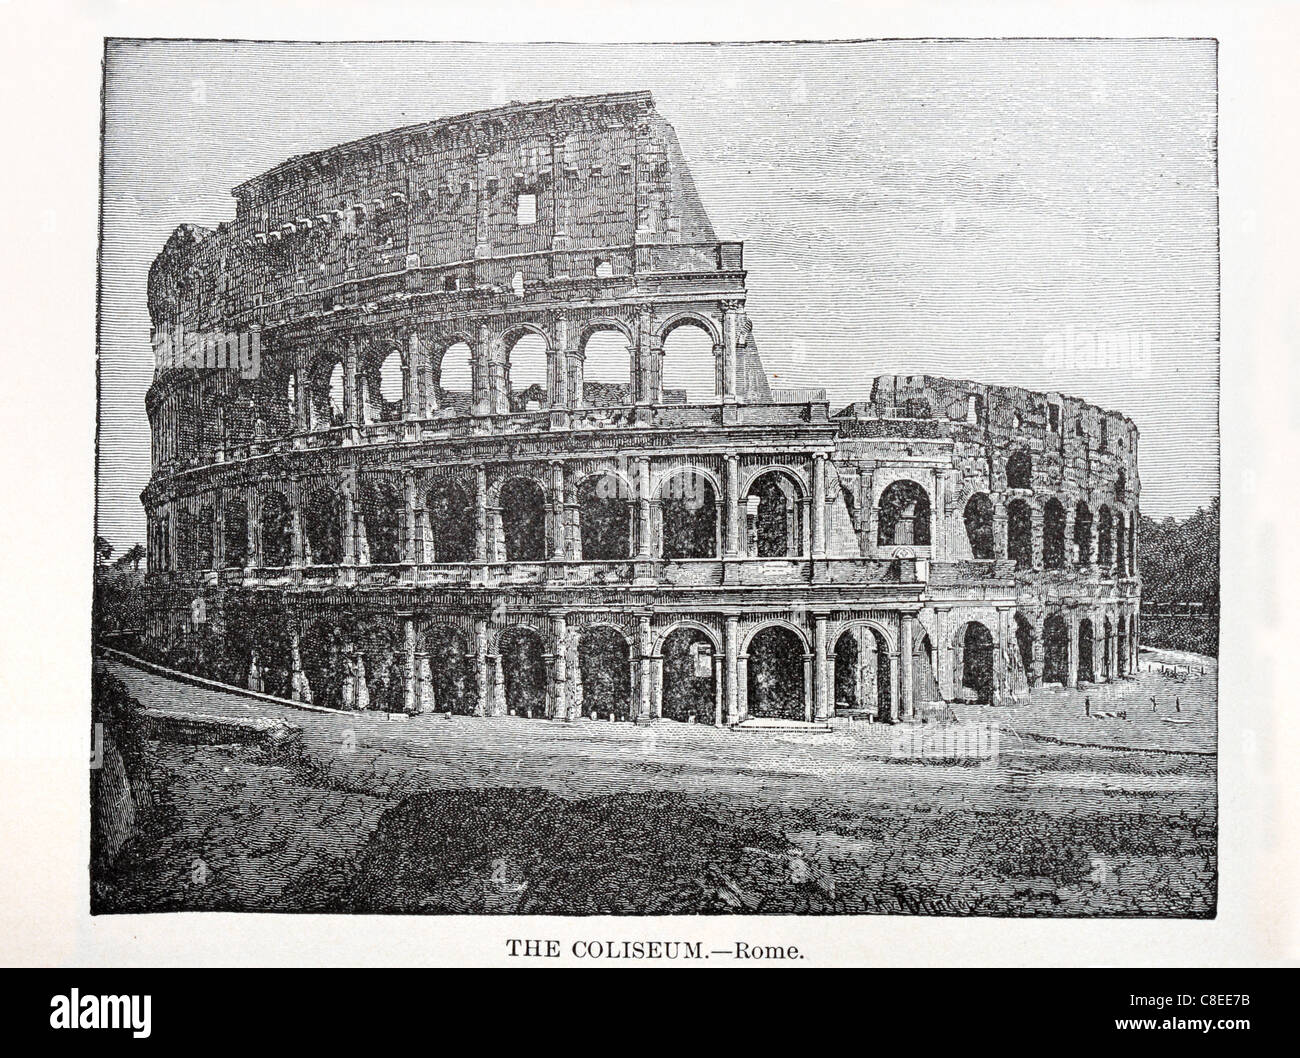 old print of the Roman Coliseum from an 1896 book - Stock Image